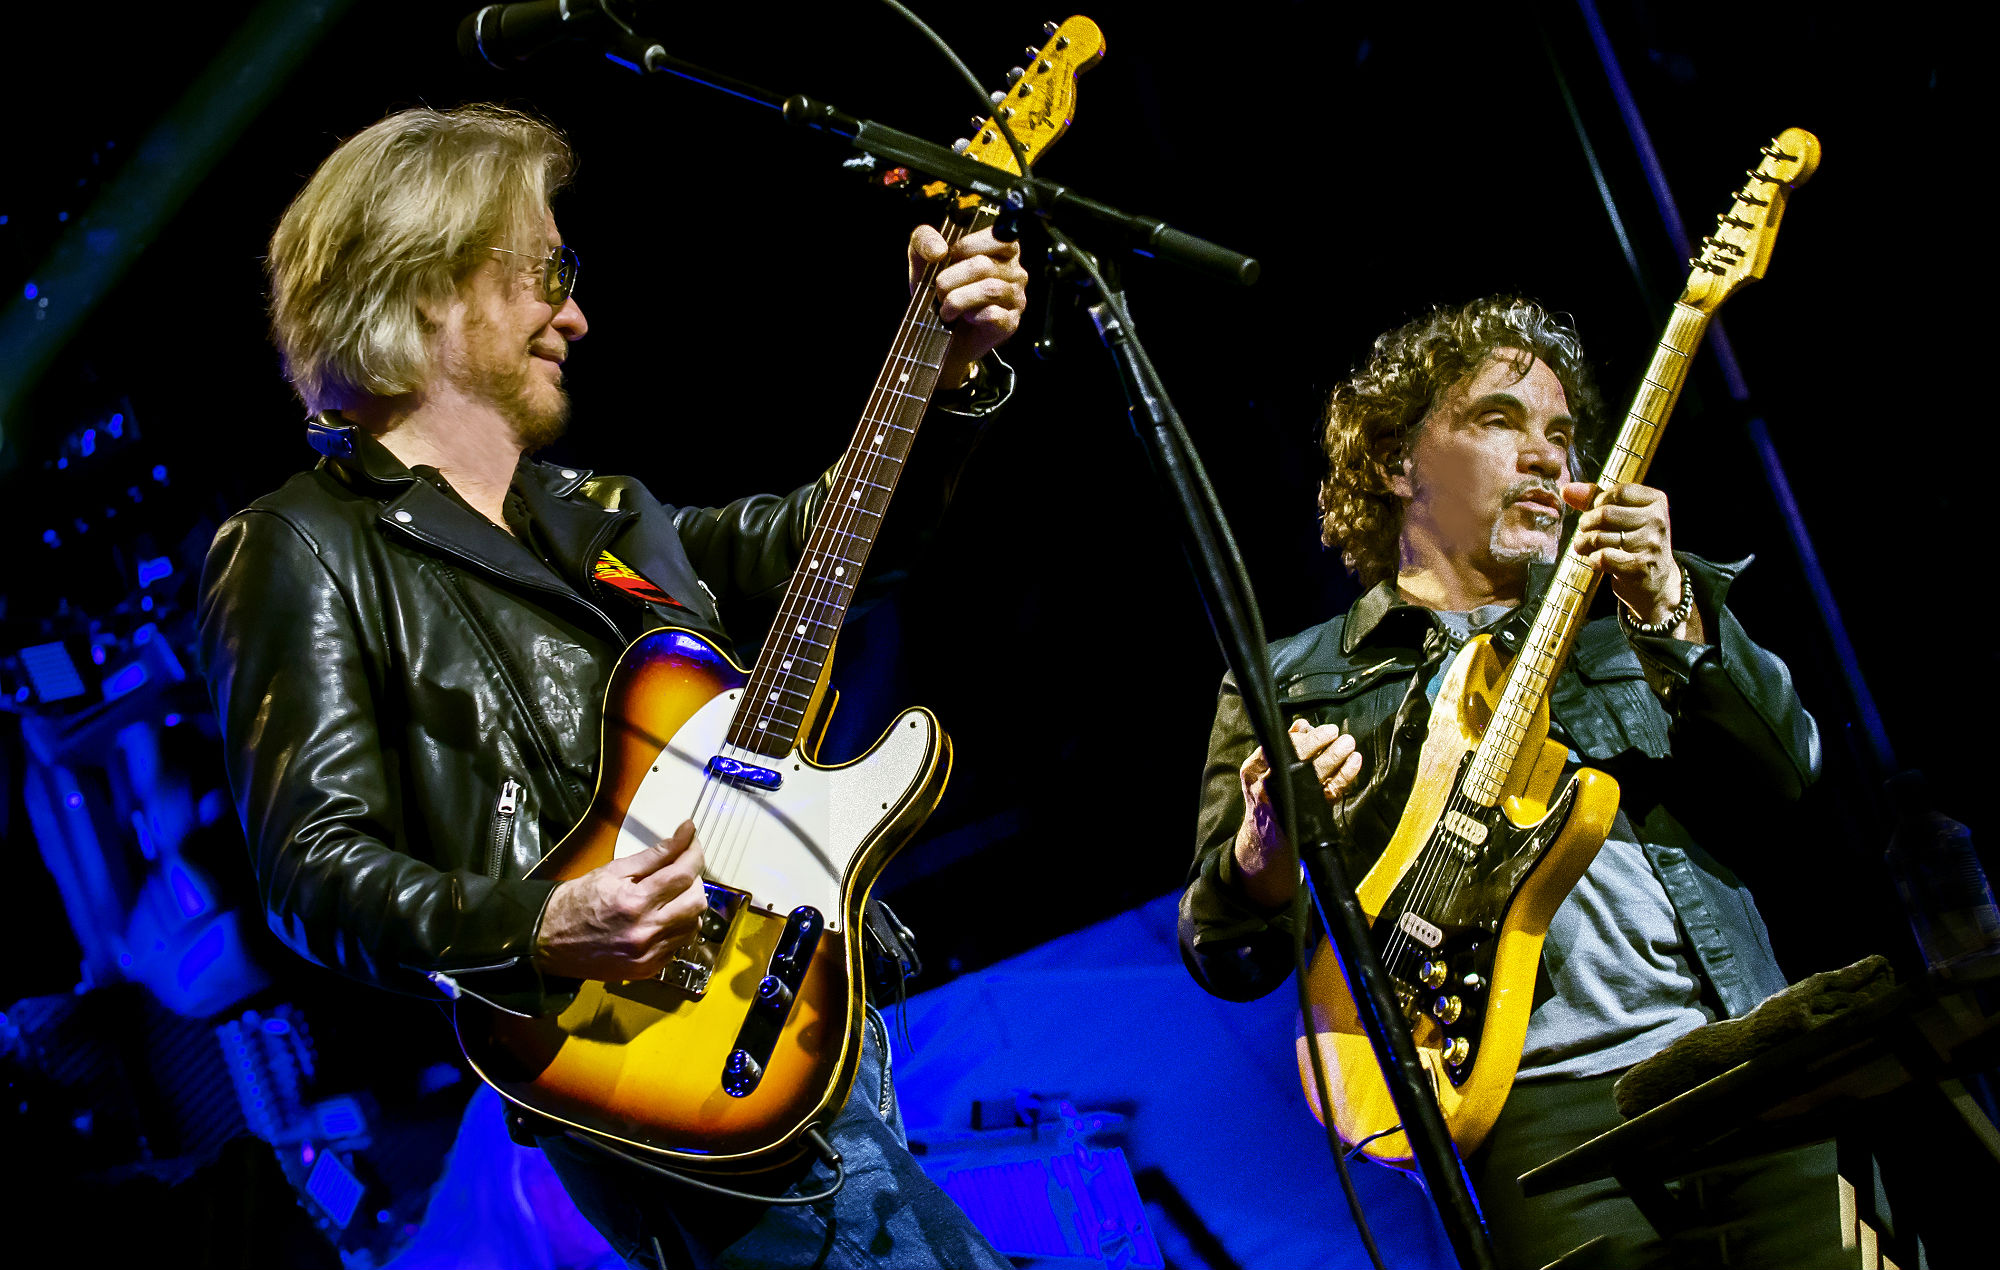 Hall & Oates on tour. Credit: Stuart Berg